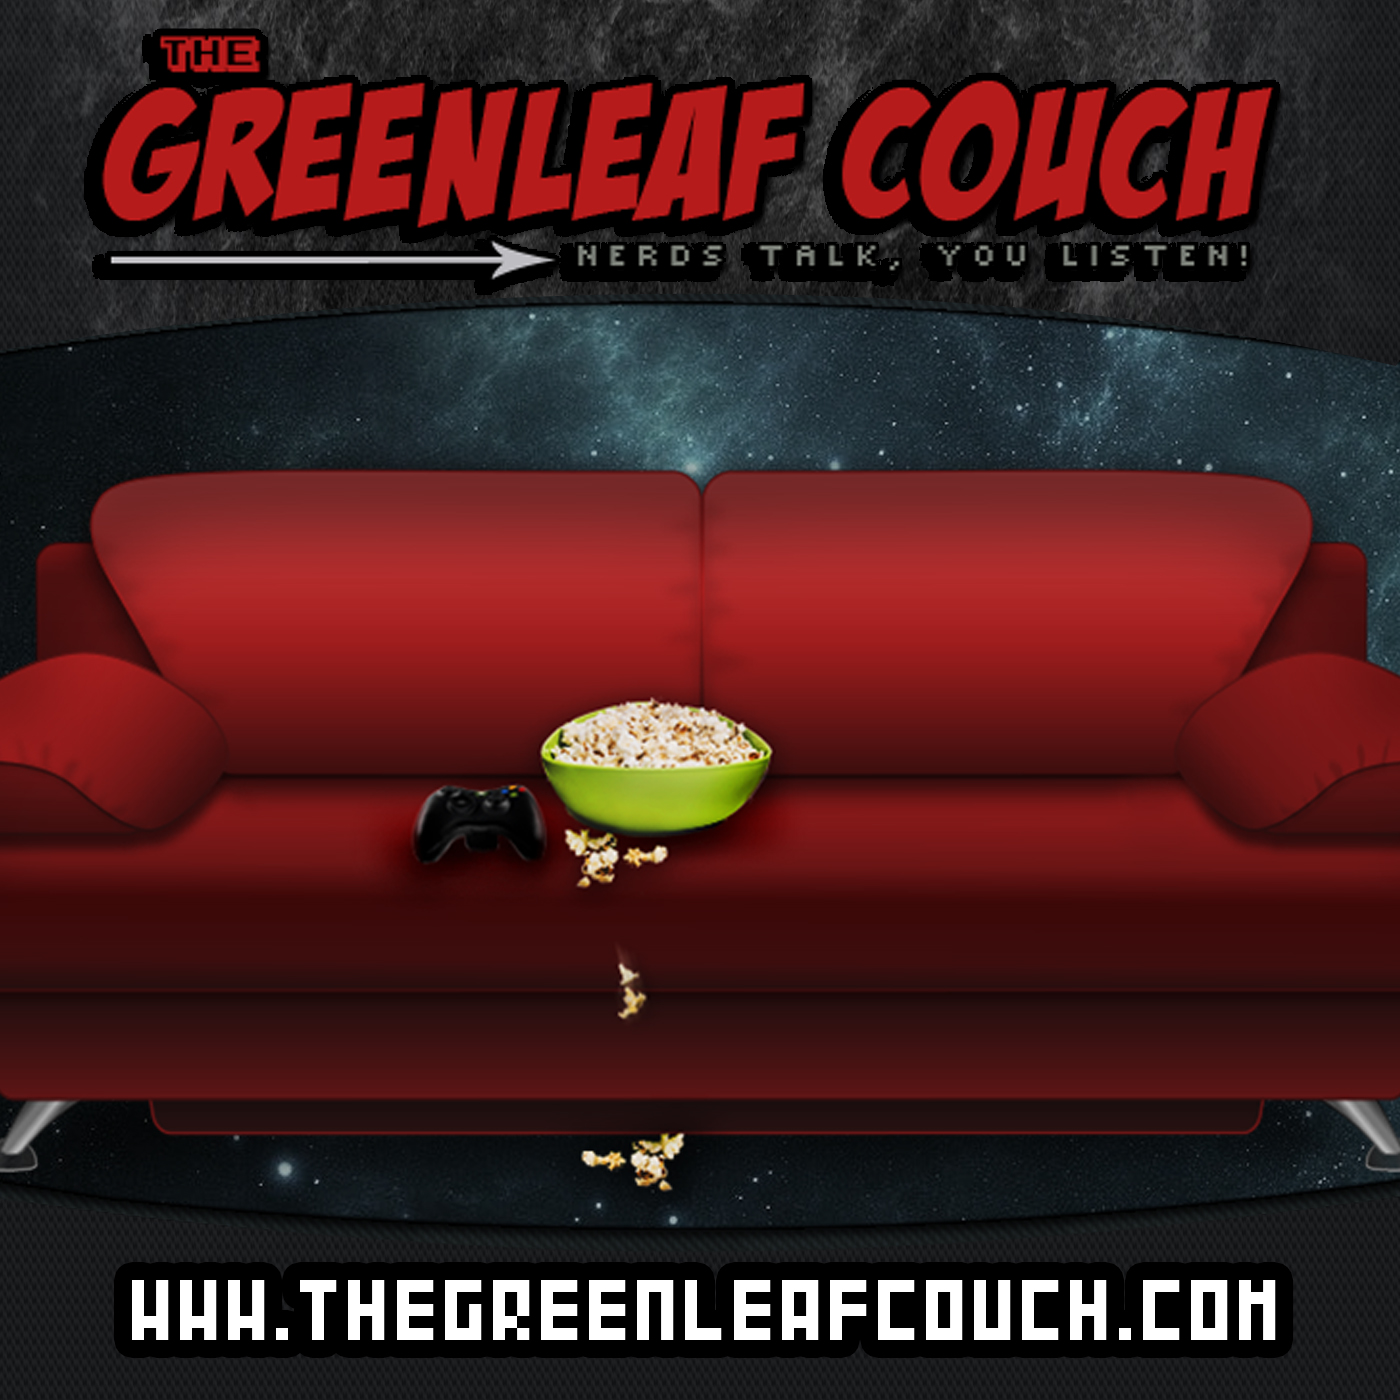 The Greenleaf Couch